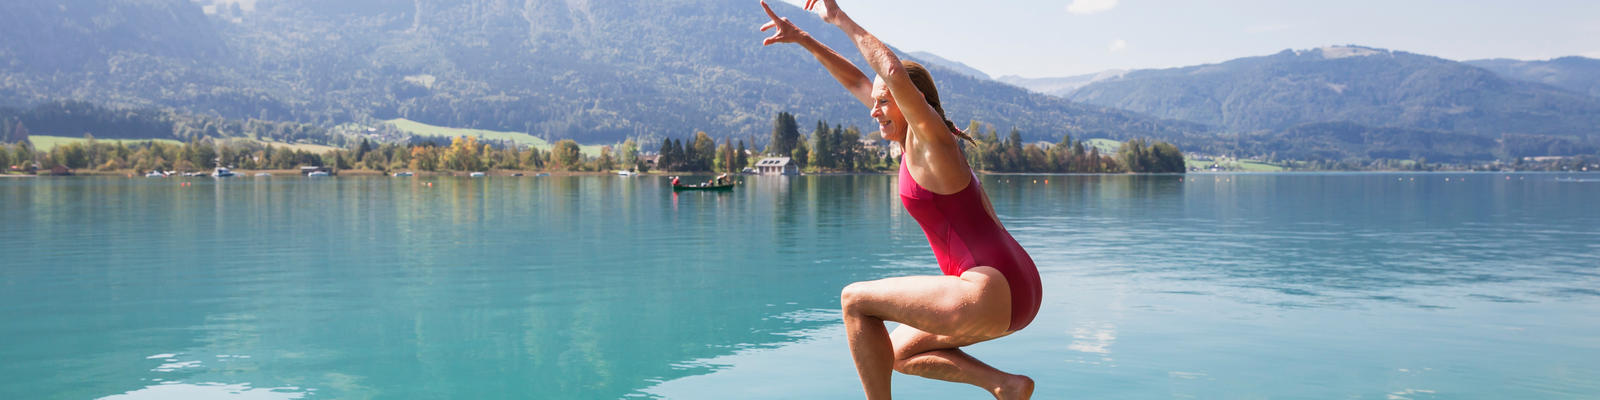 dear travel woman jumping into lake